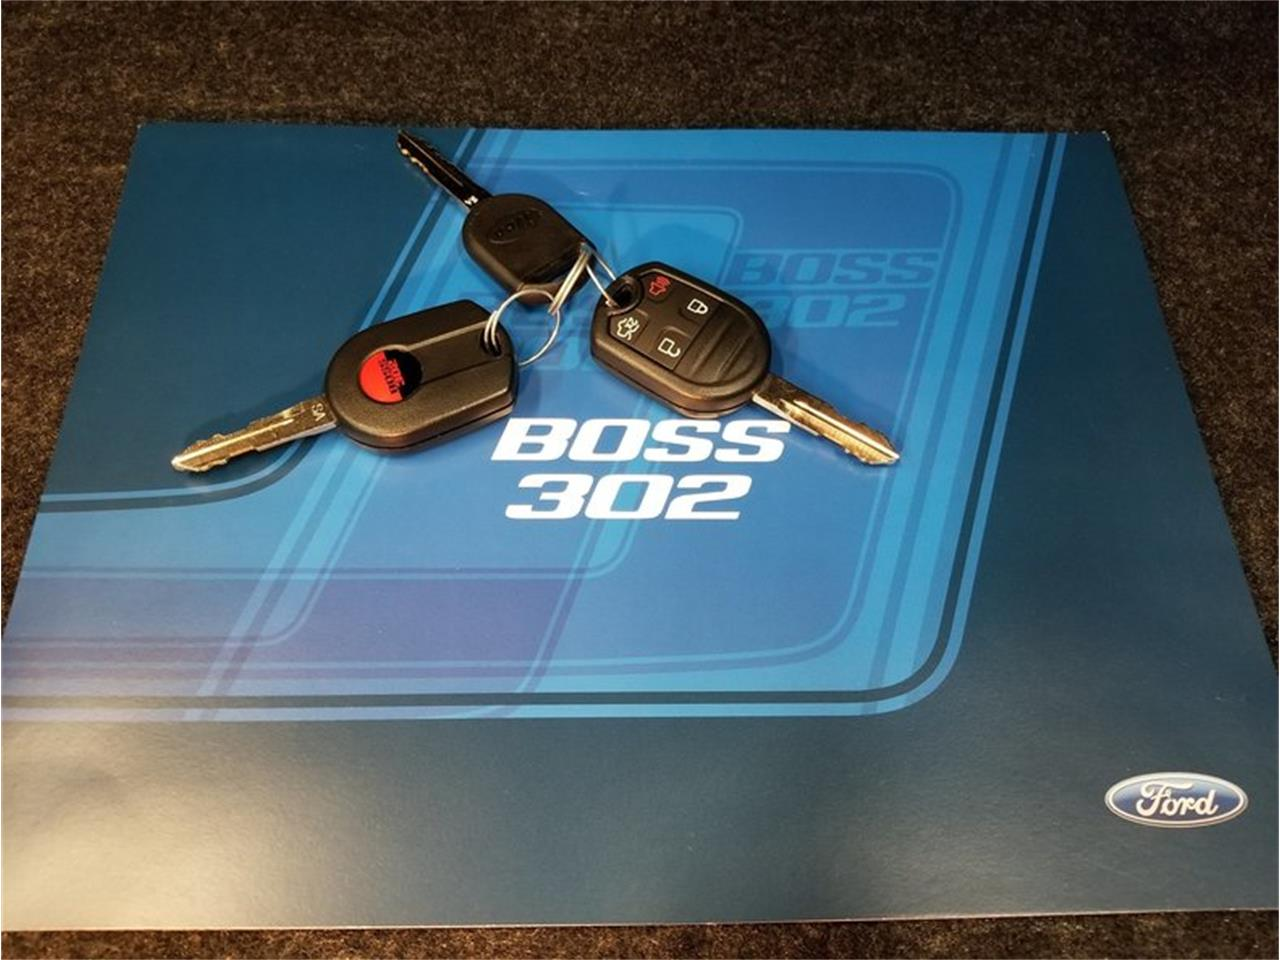 2012 Ford Mustang Boss 302 Laguna Seca For Sale Keys Large Picture Of 12 M1f4